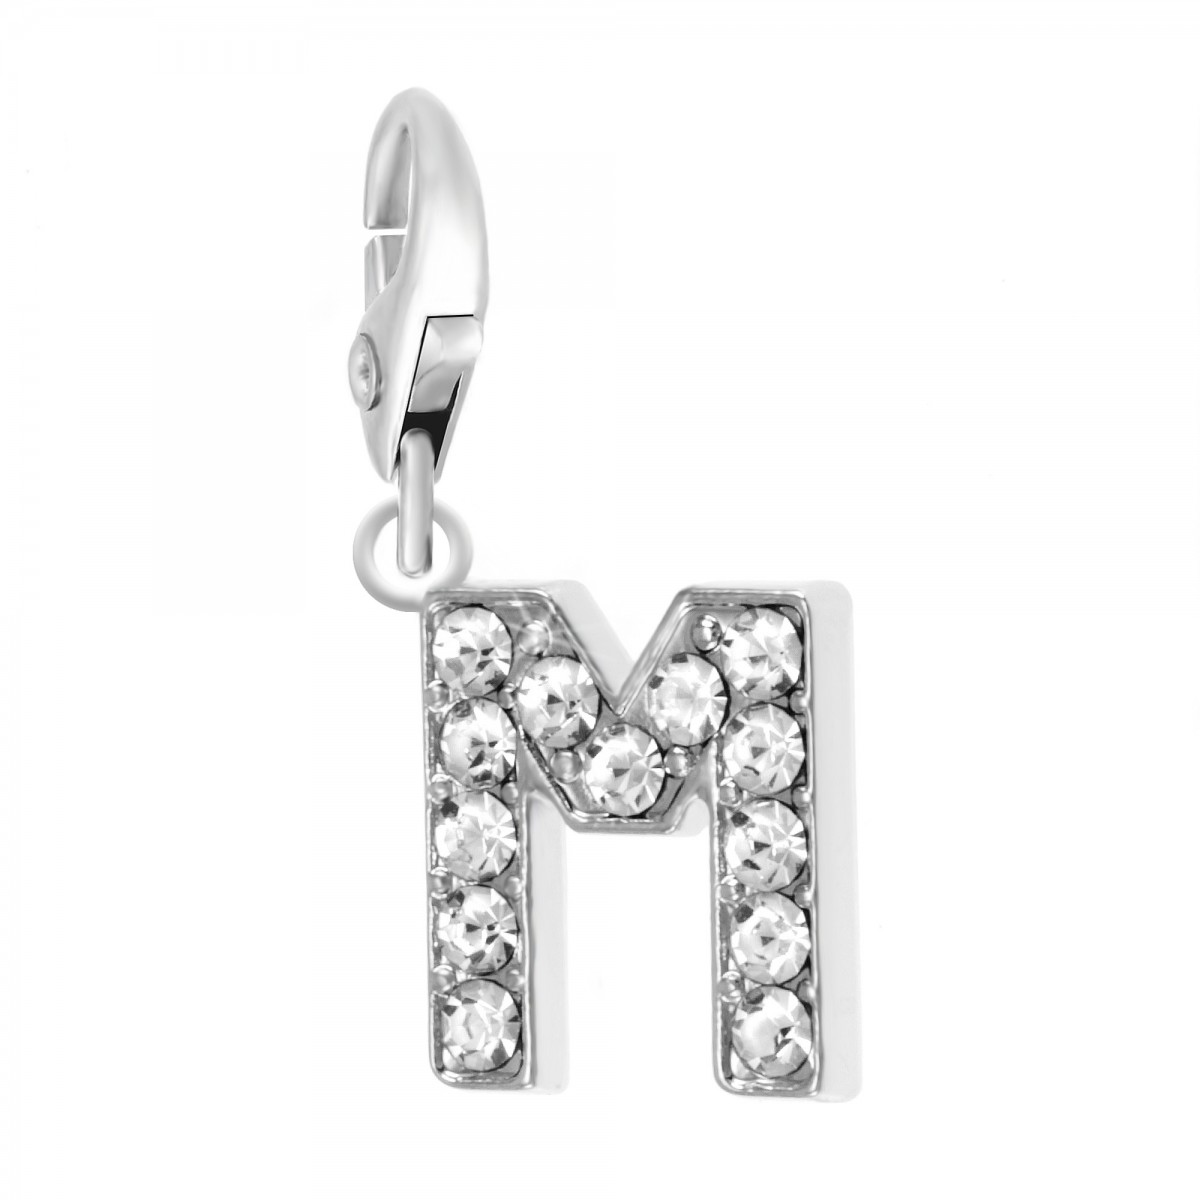 Charm Lettre M So Charm made with Crystal from Swarovski